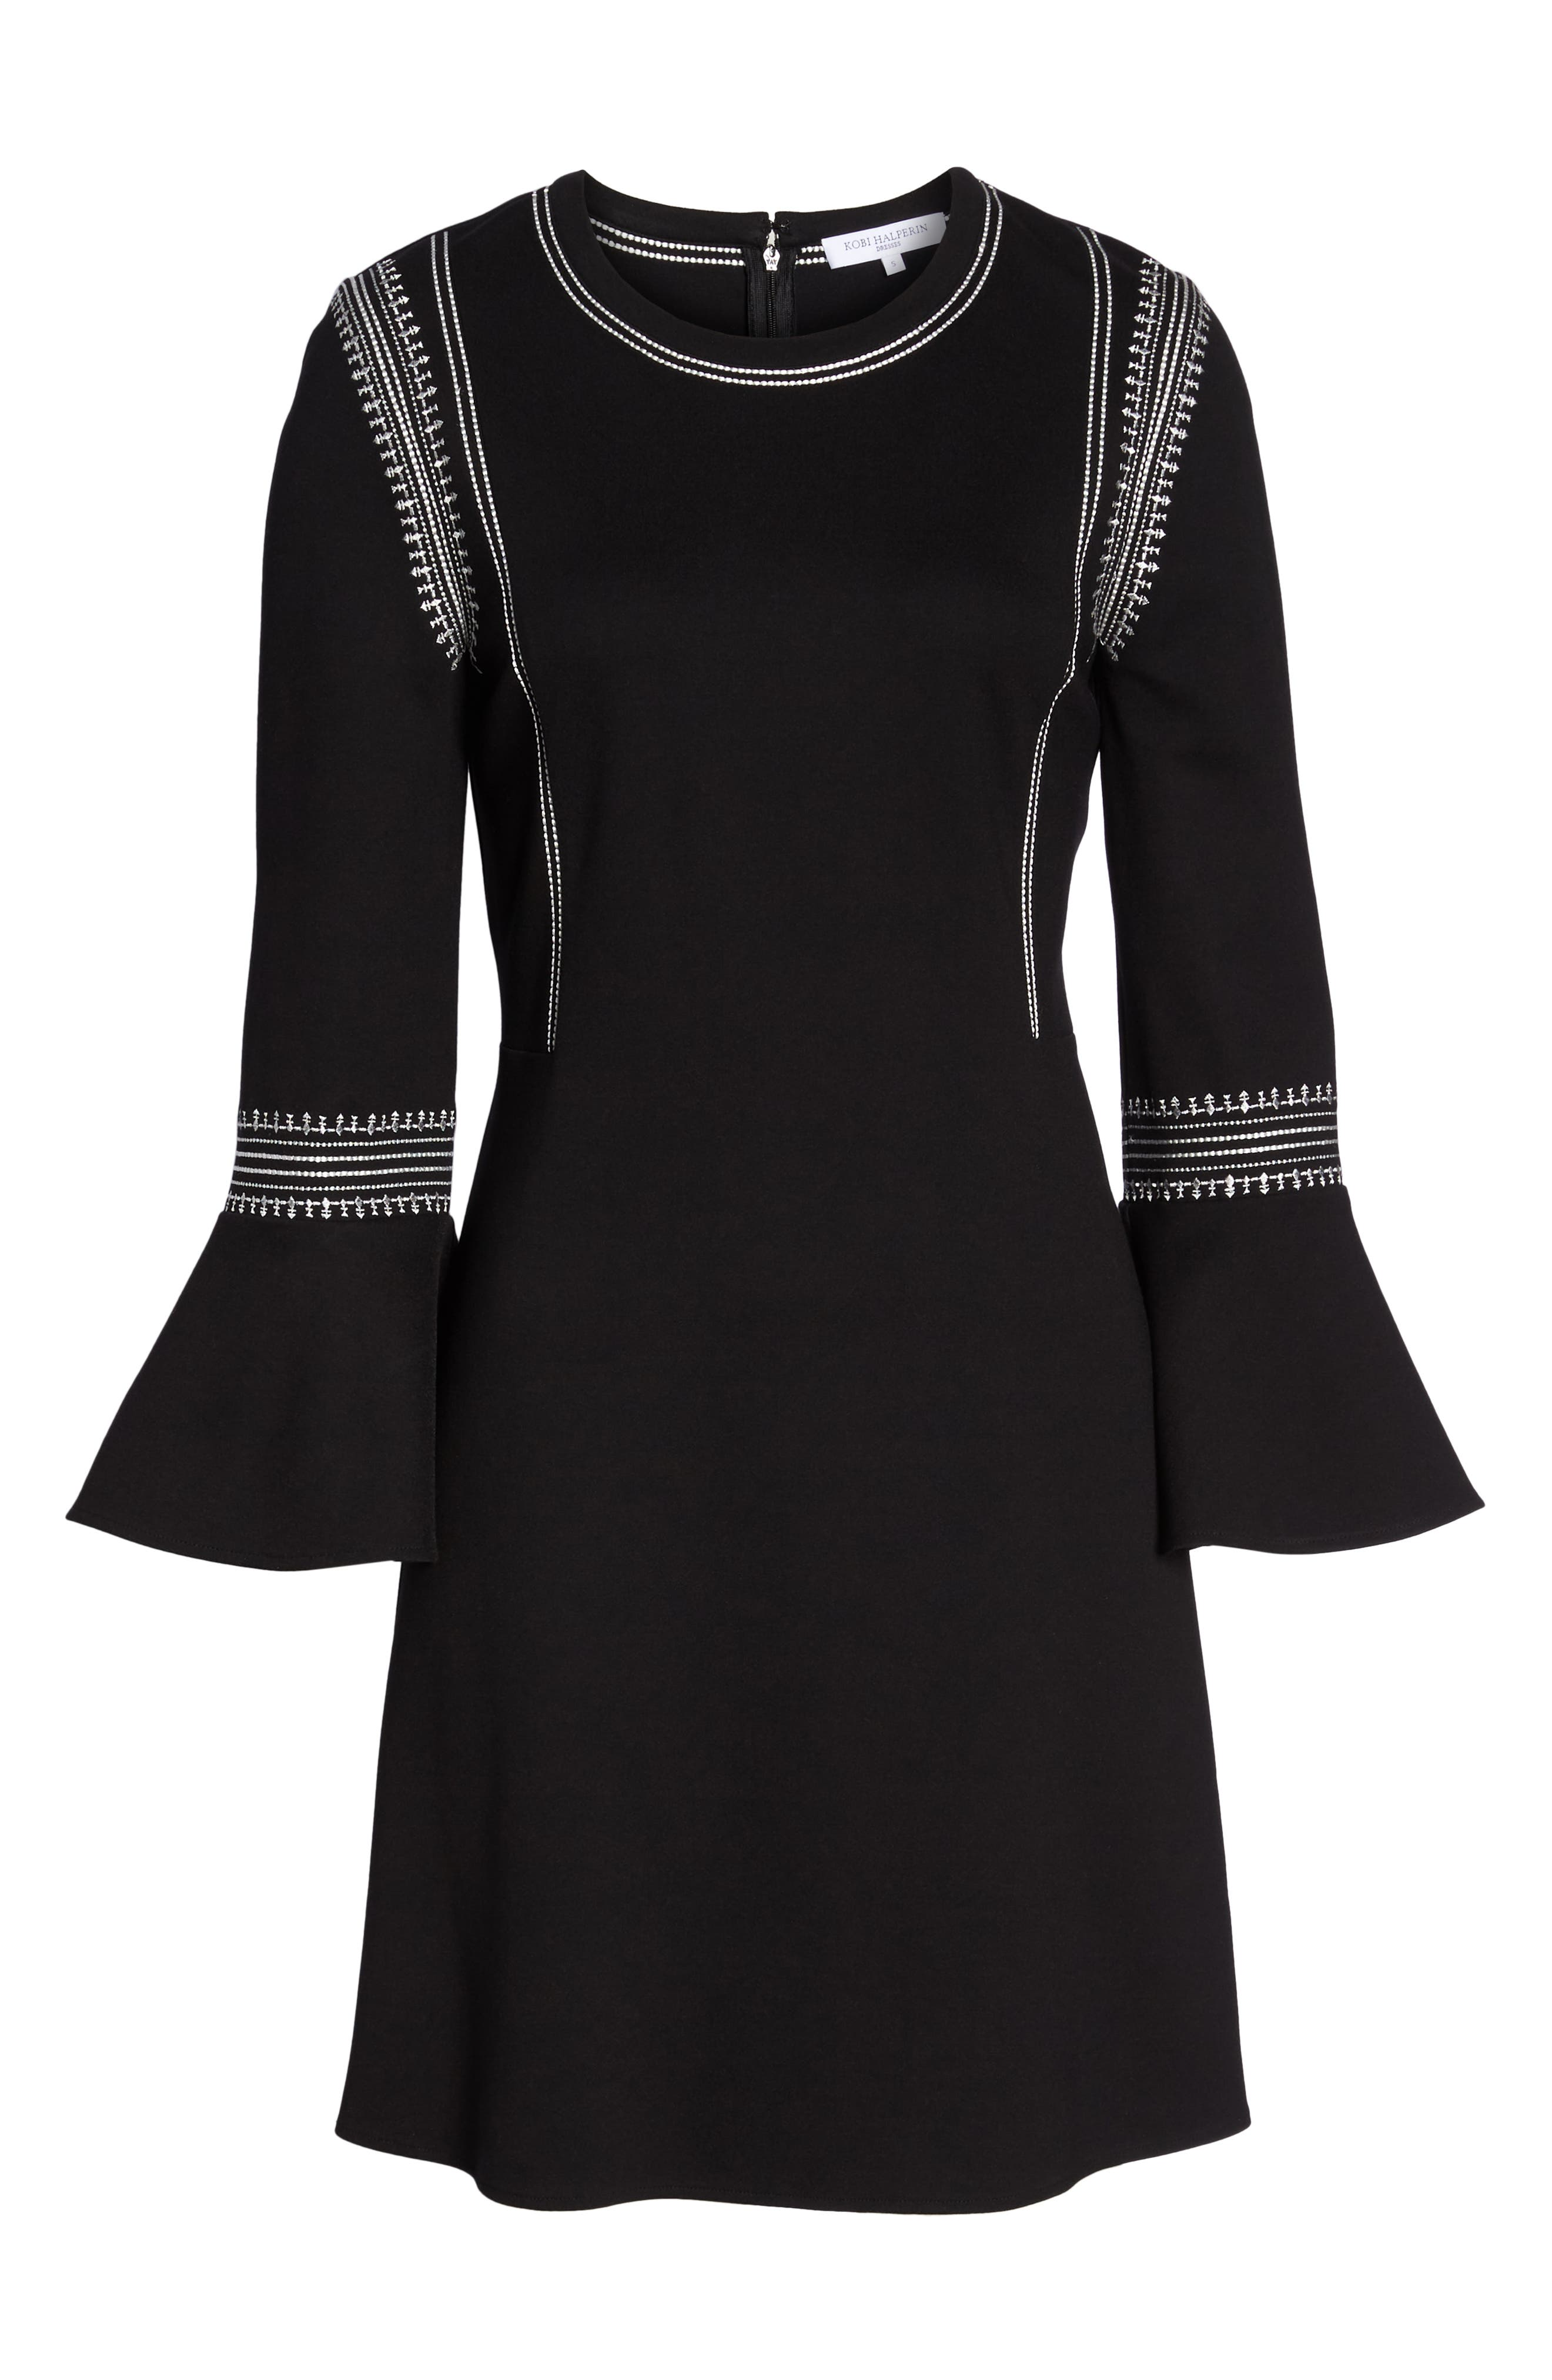 Danielle Embroidered Bell Sleeve Knit Dress,                             Alternate thumbnail 6, color,                             Black